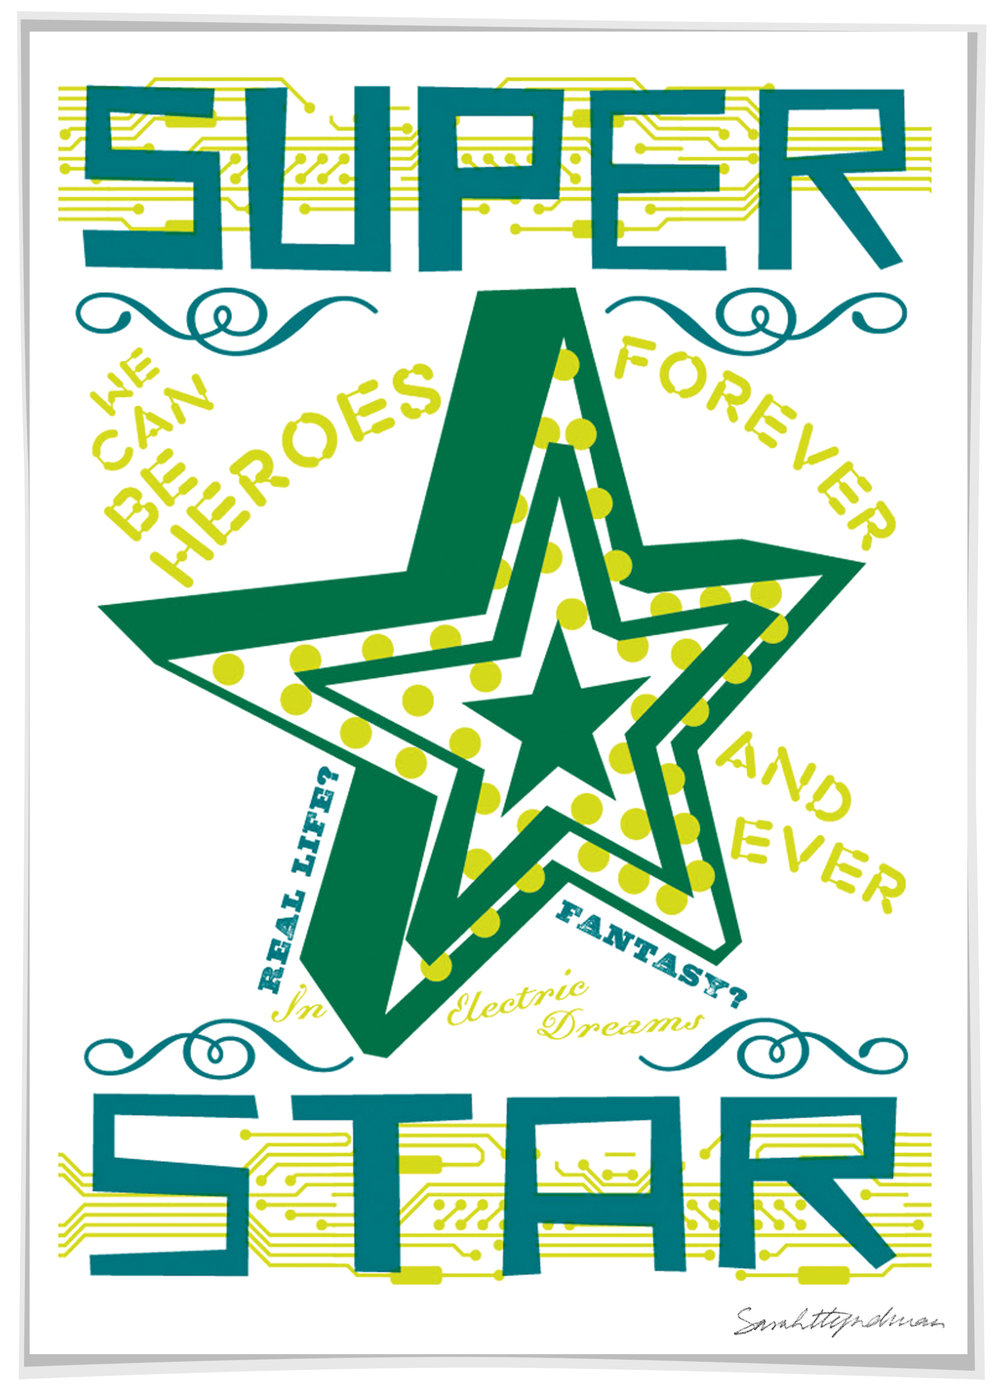 Super Star screen print by Sarah Hyndman